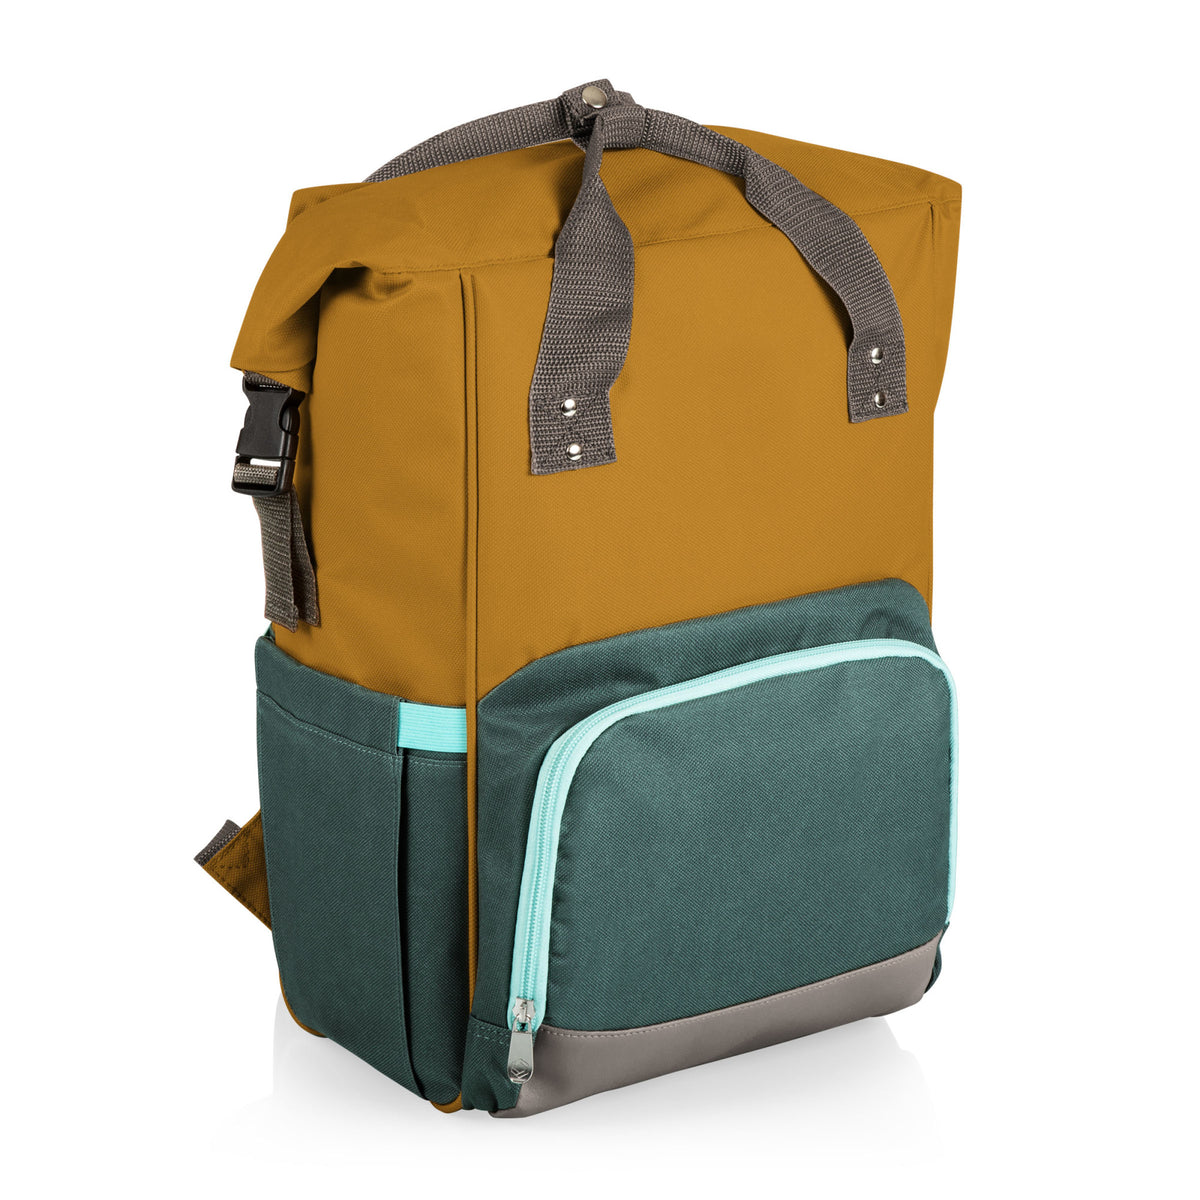 Picnic Time - On The Go Roll-Top Cooler Backpack